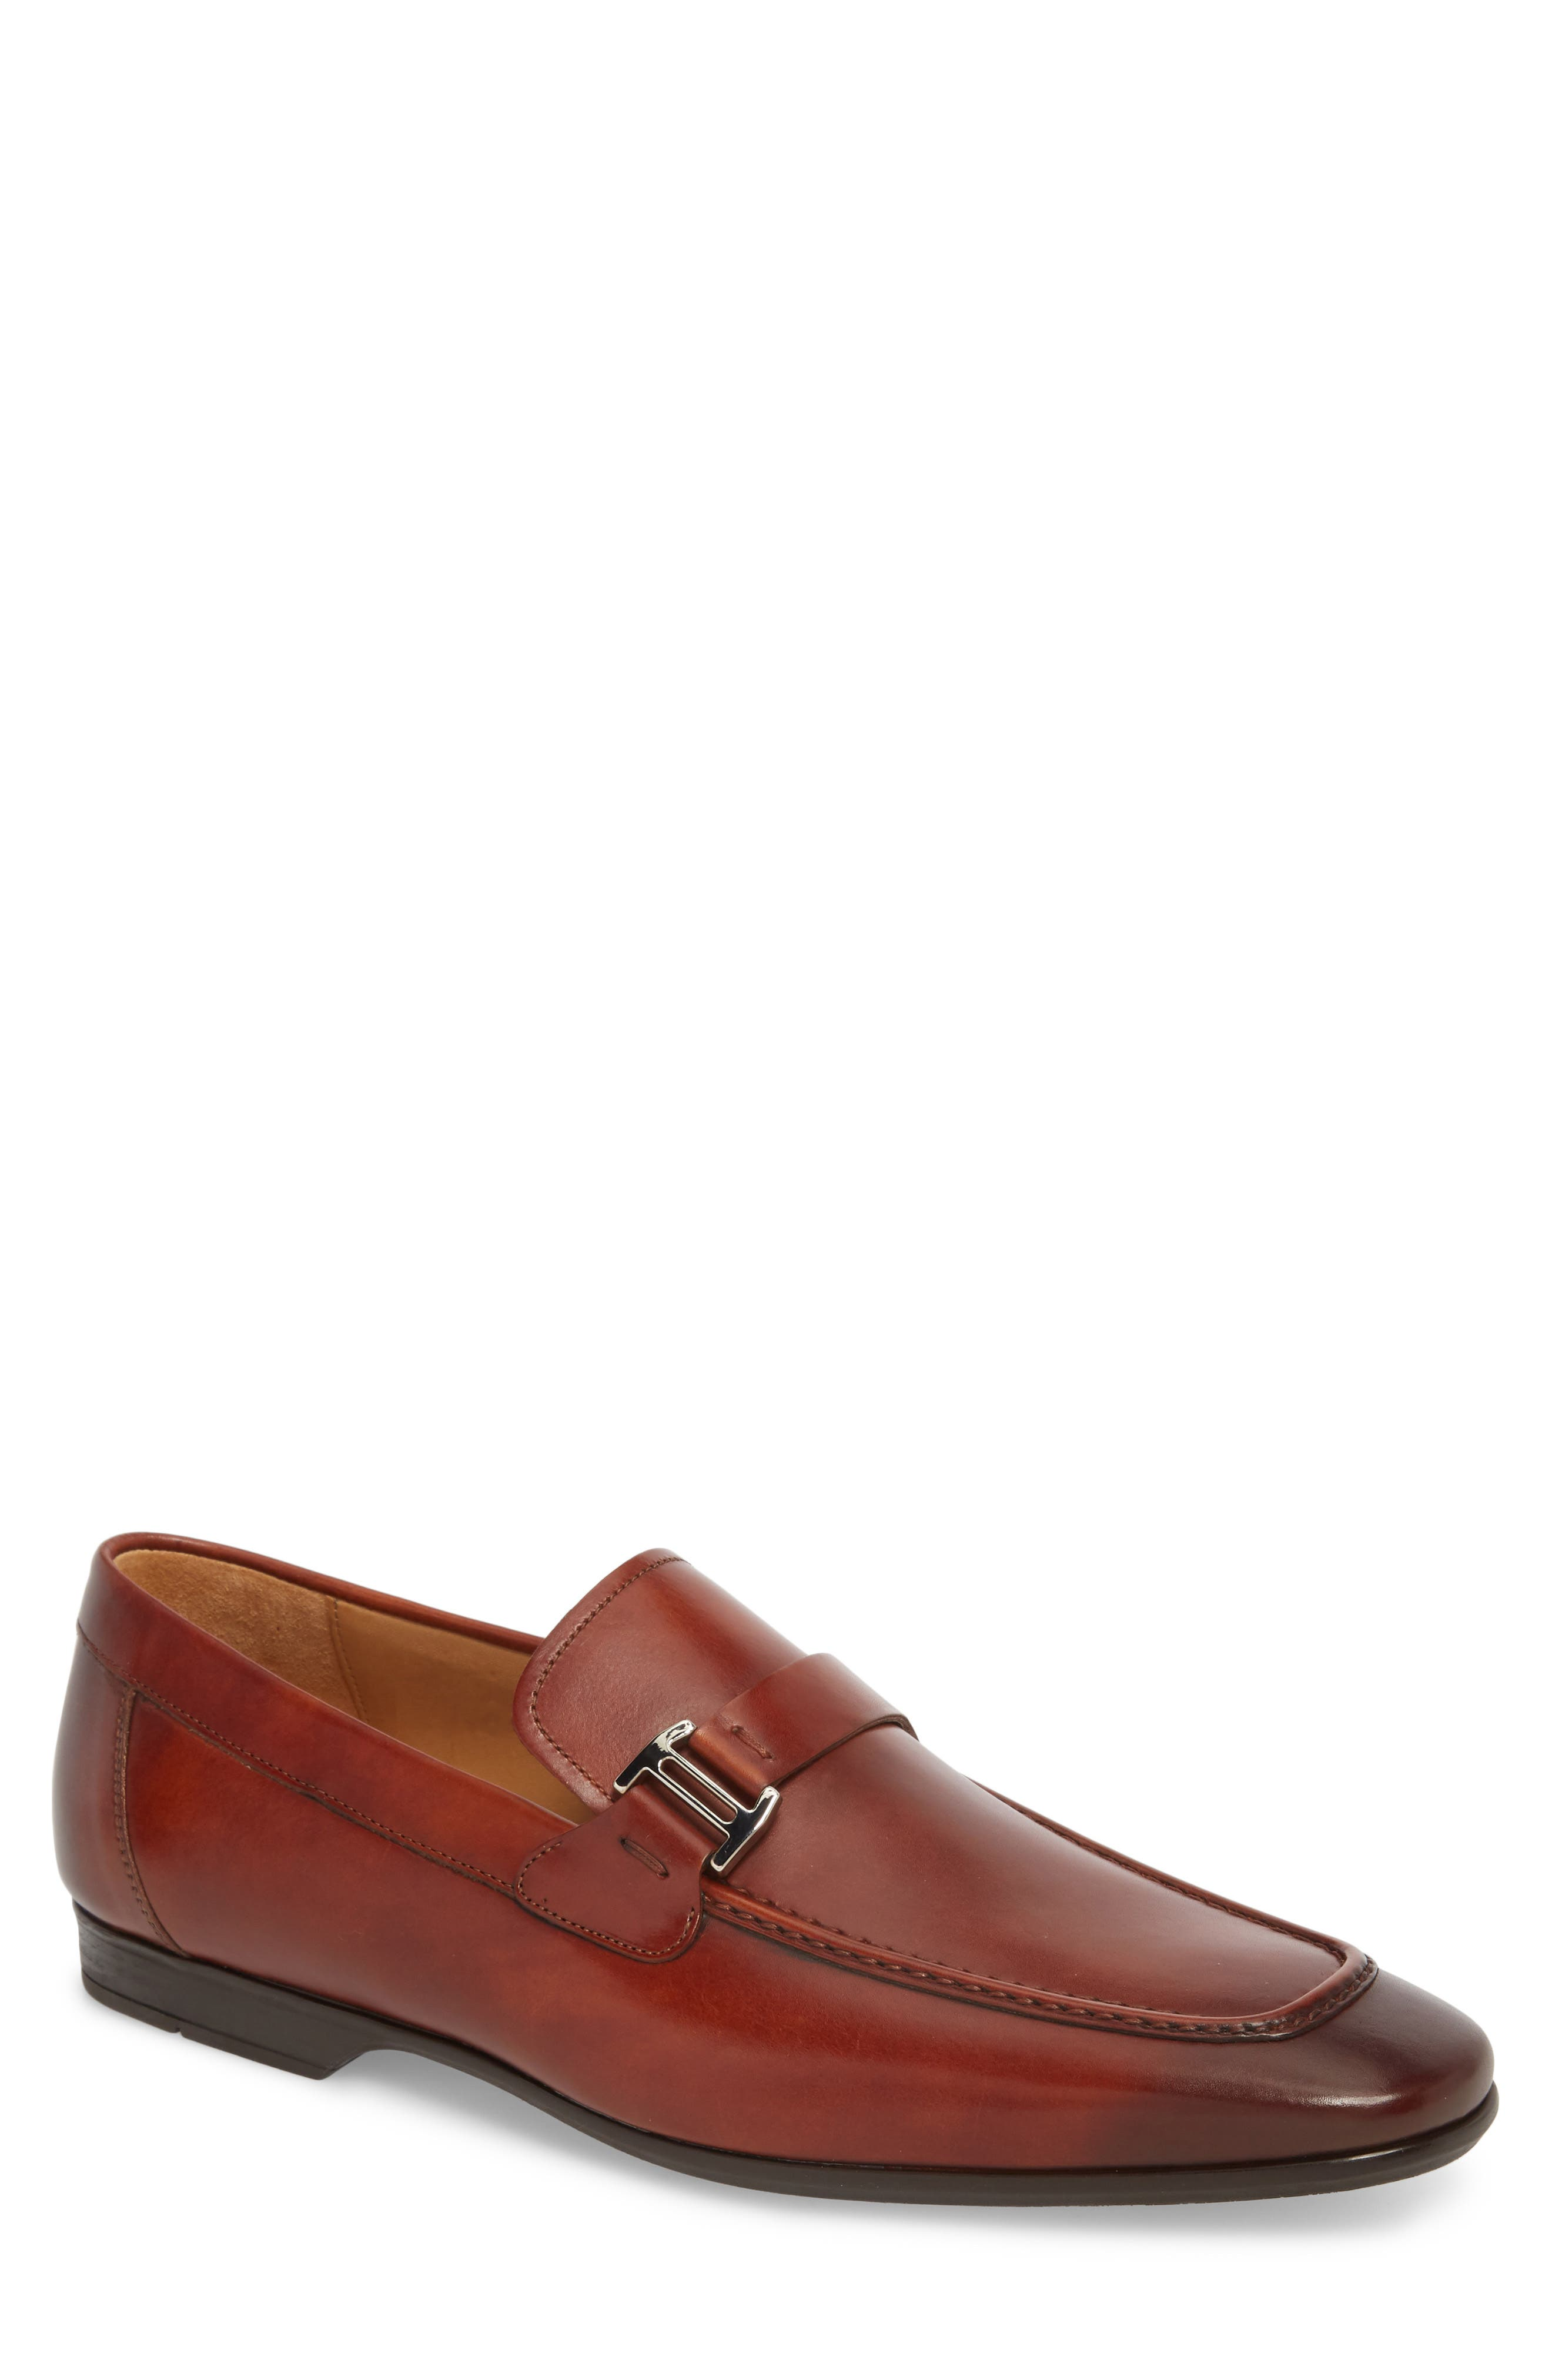 'Lino' Loafer,                         Main,                         color,